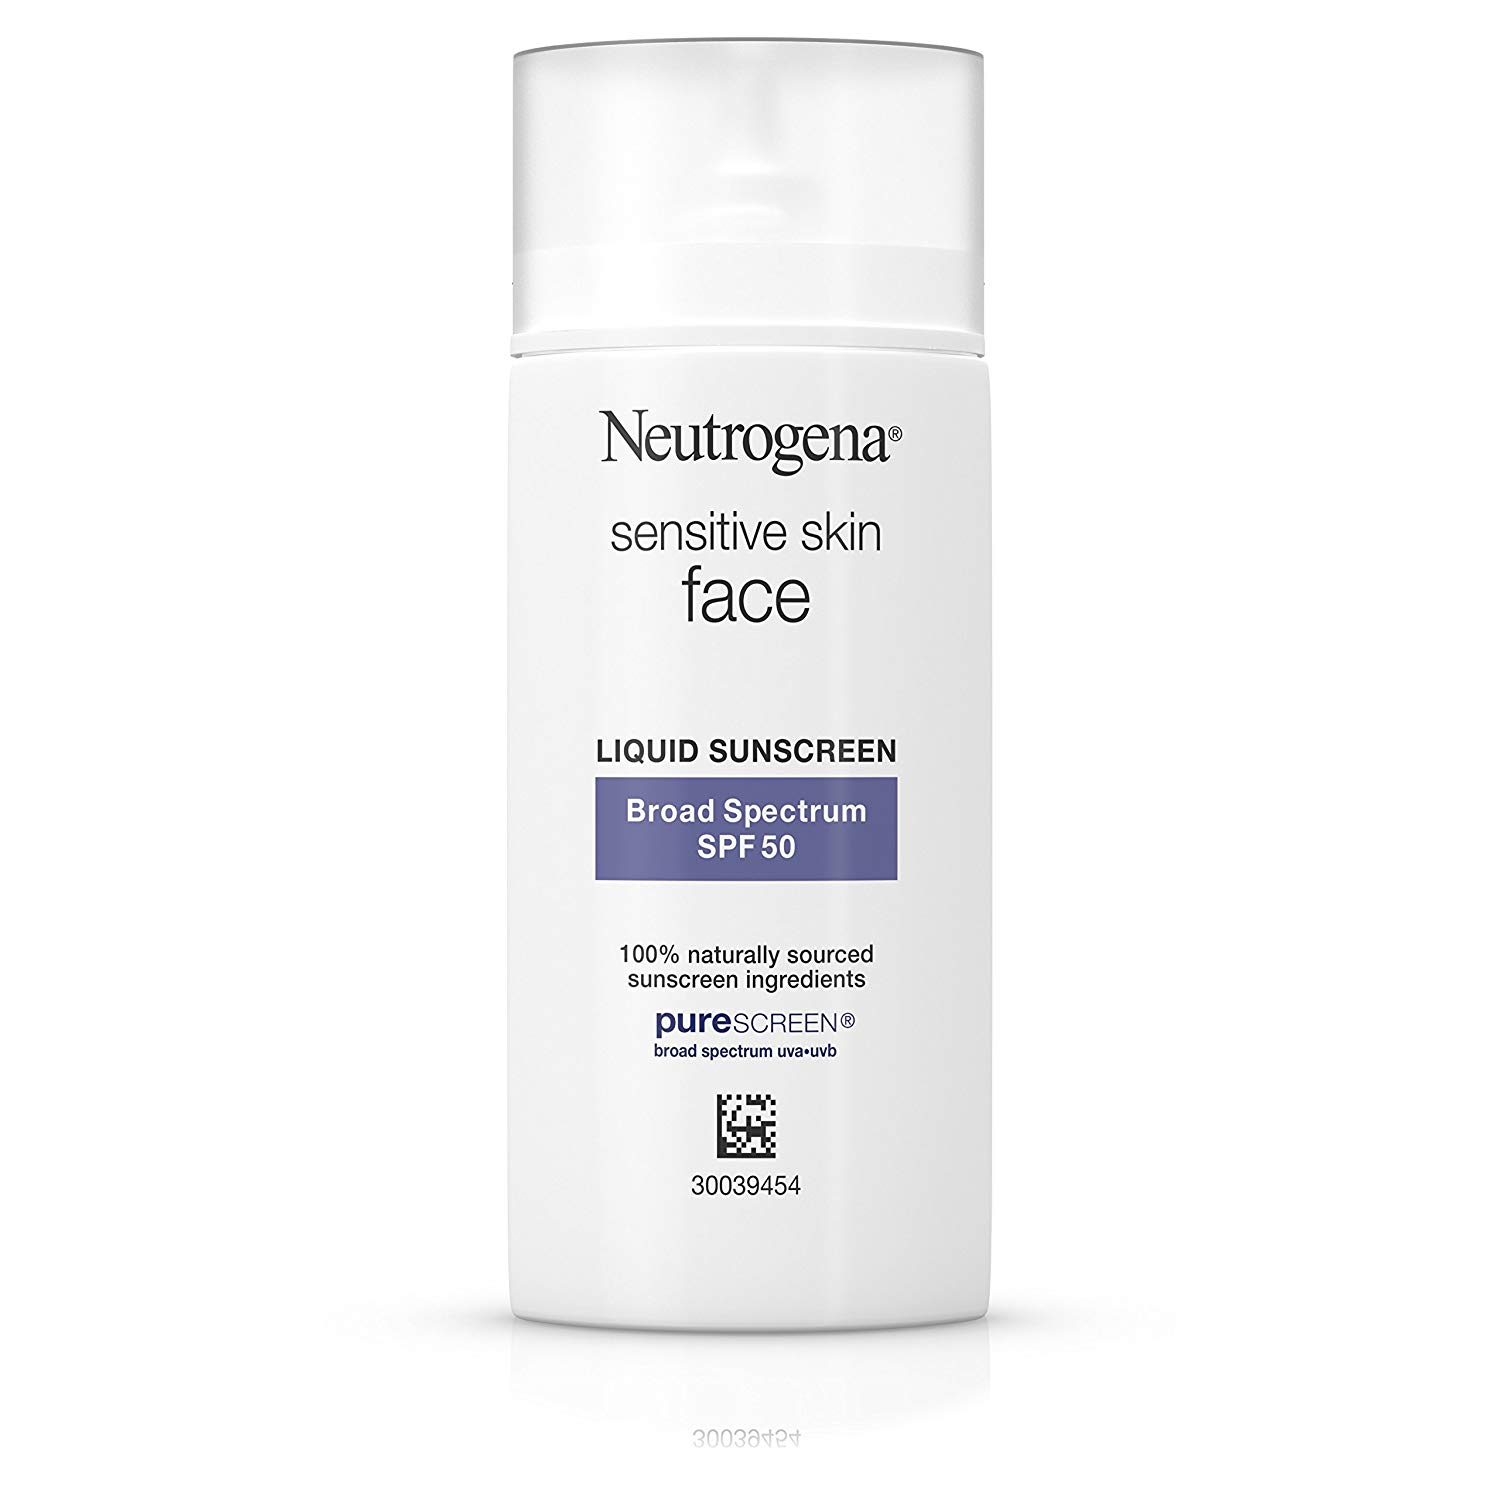 Neutrogena Best Outdoor Tanning Lotion